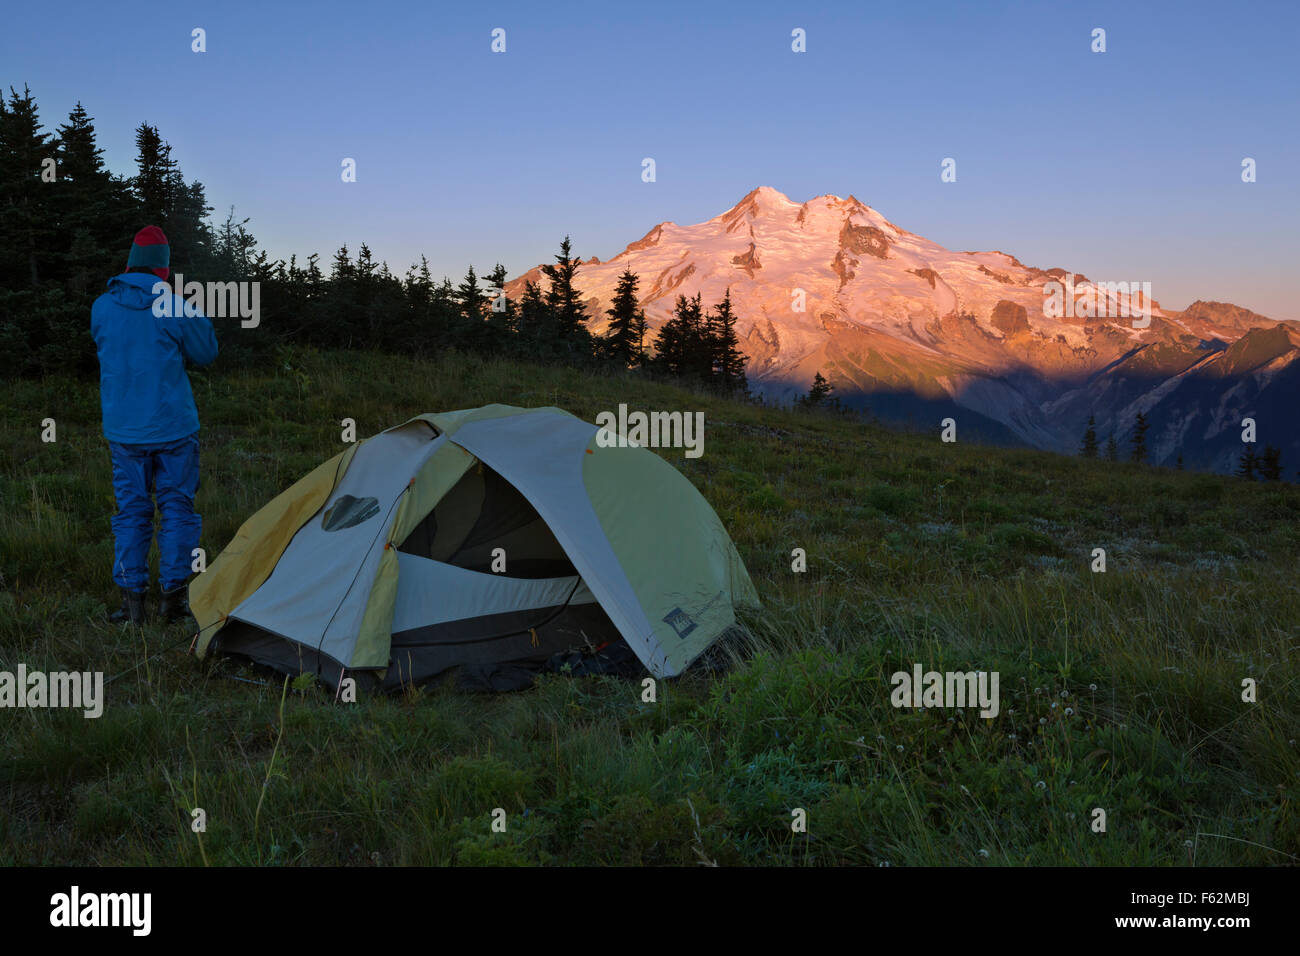 WASHINGTON - Backpacker at campsite on Liberty Cap watching the sunrise on Glacier Peak in Glacier Peak Wilderness. - Stock Image